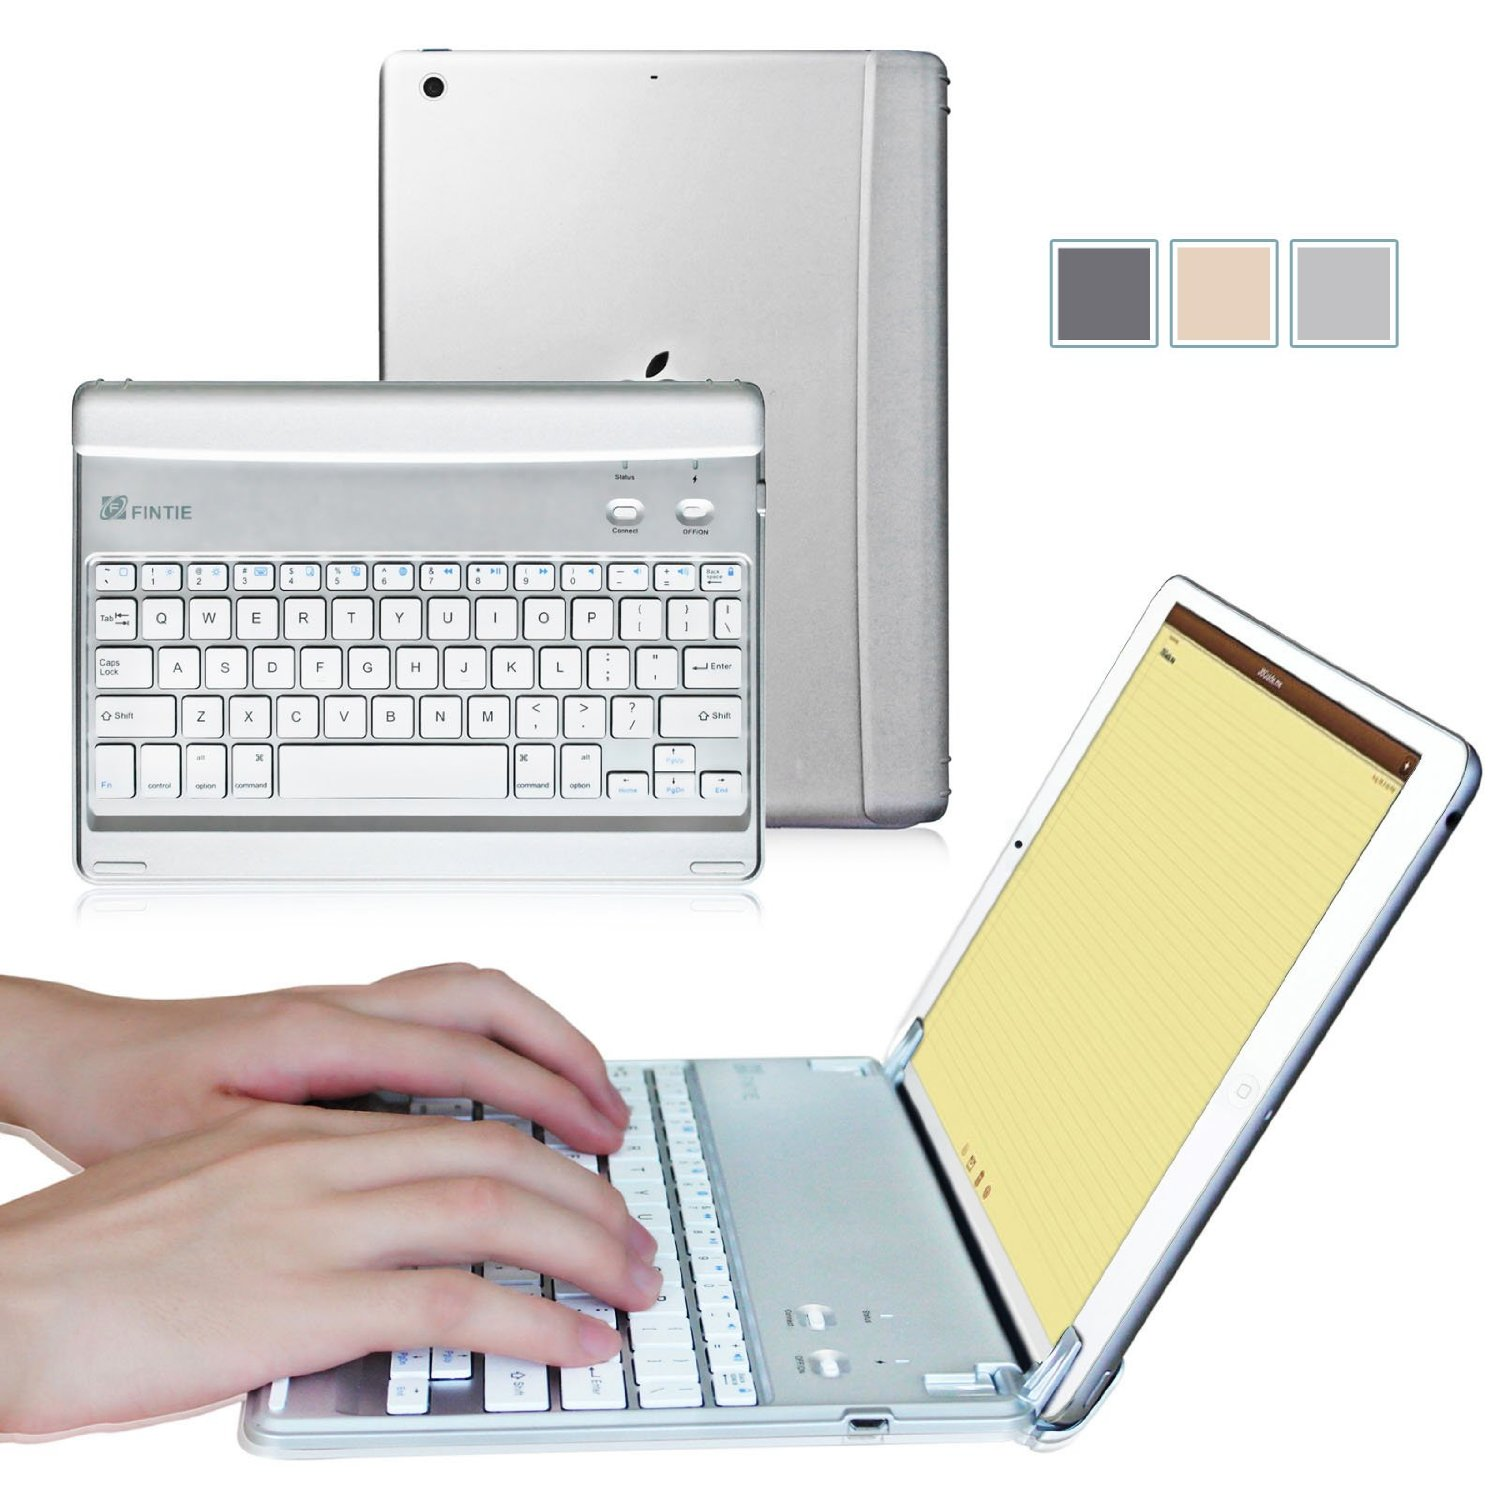 Fintie Apple iPad mini 1/2/3 Cover - Blade Z1 Slim Multi-Angle Wireless Bluetooth Keyboard Auto Wake/Sleep, Sliver